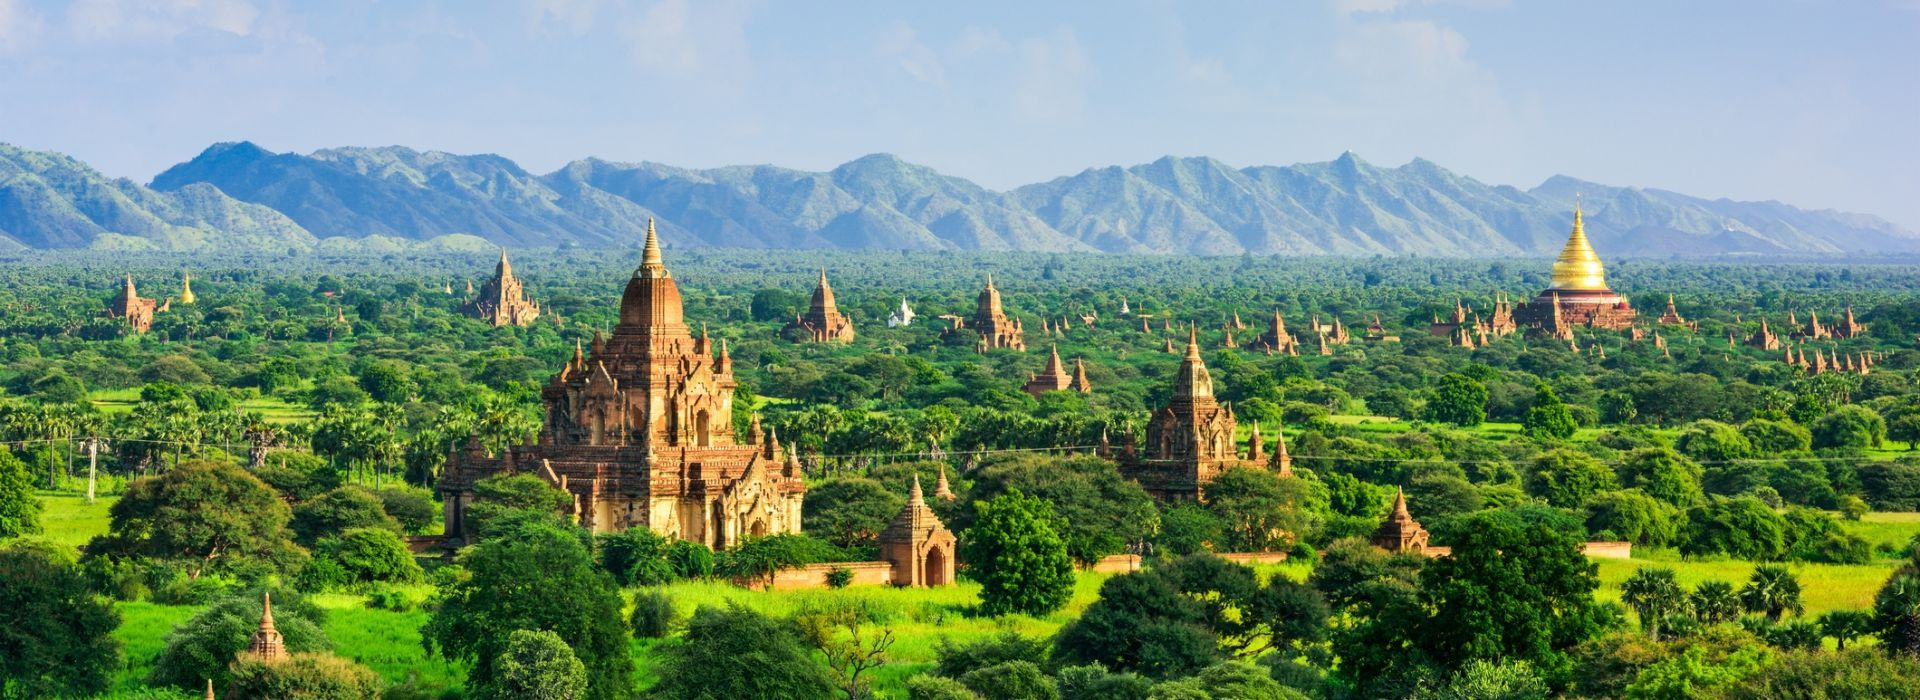 City sightseeing Tours in Inle Lake